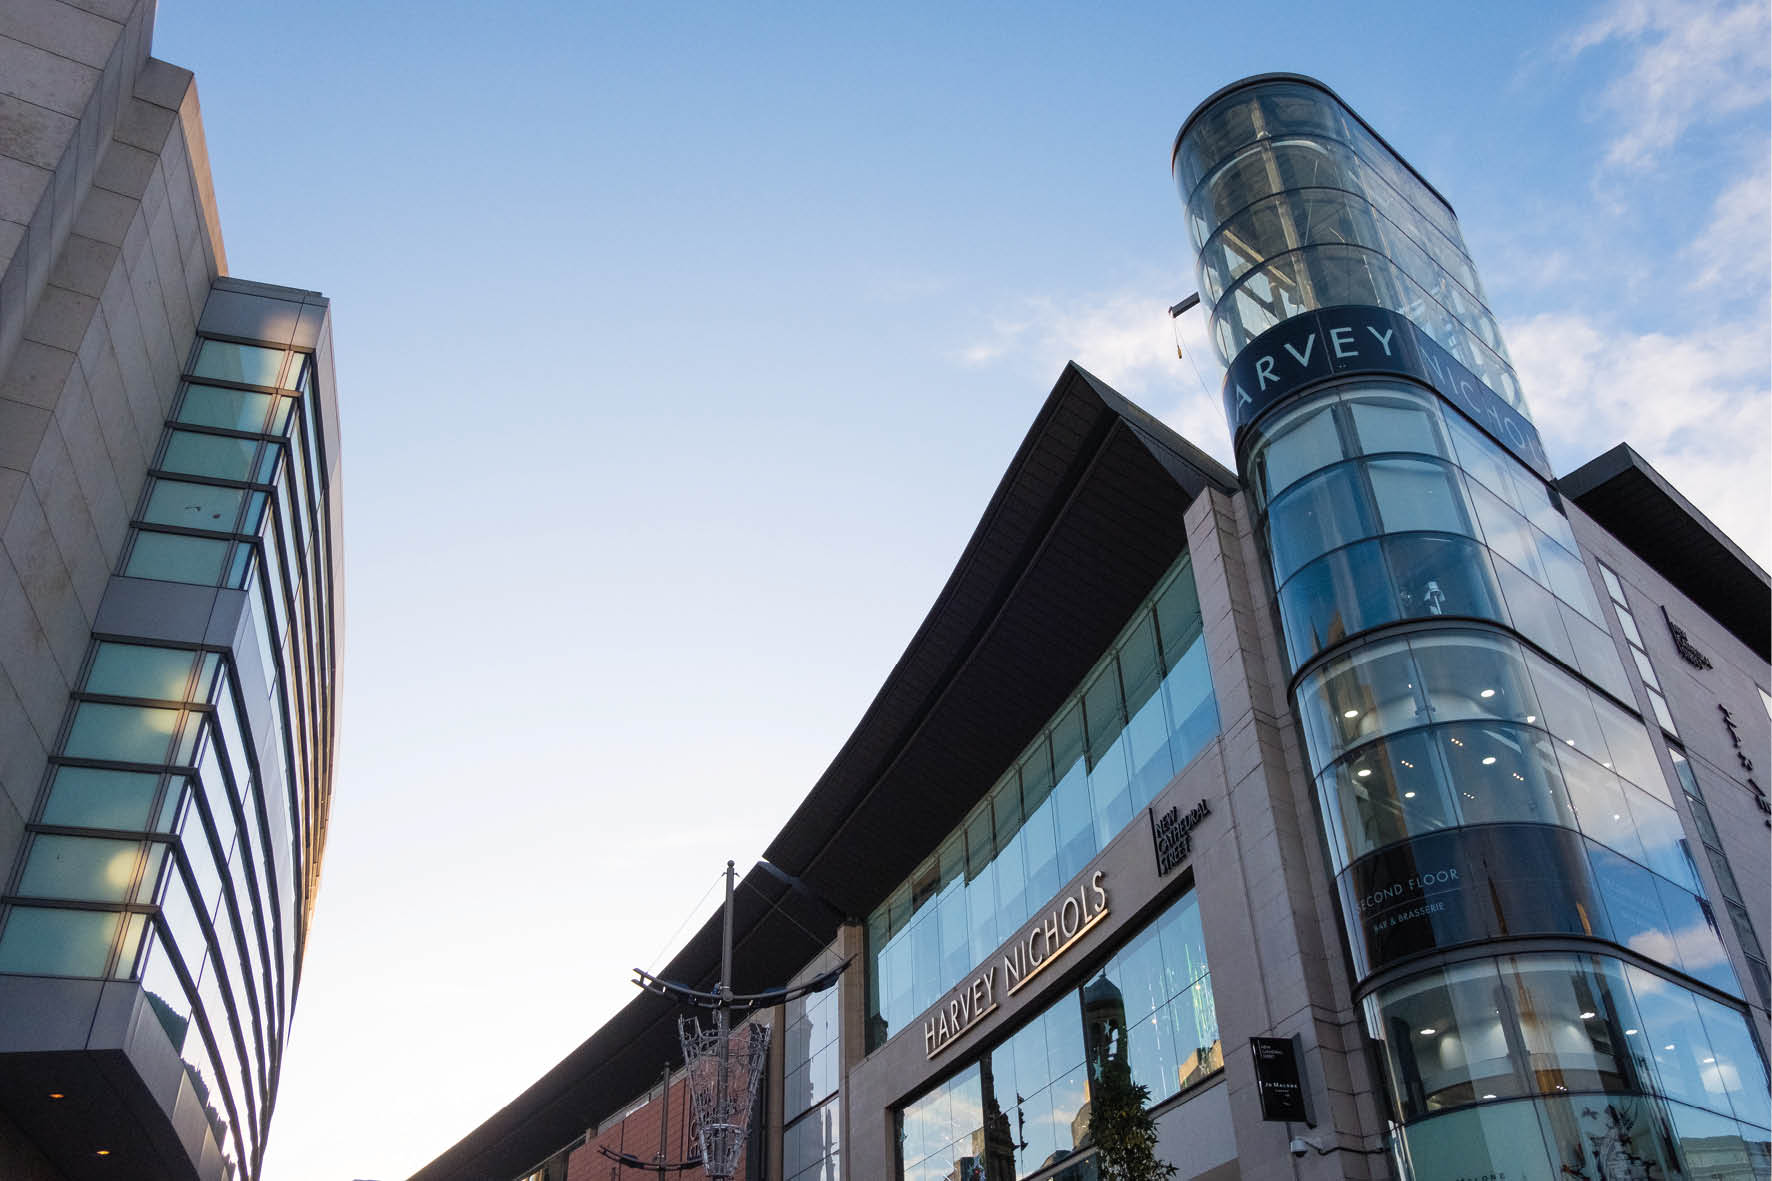 deansgate_square_manchester_90.jpg